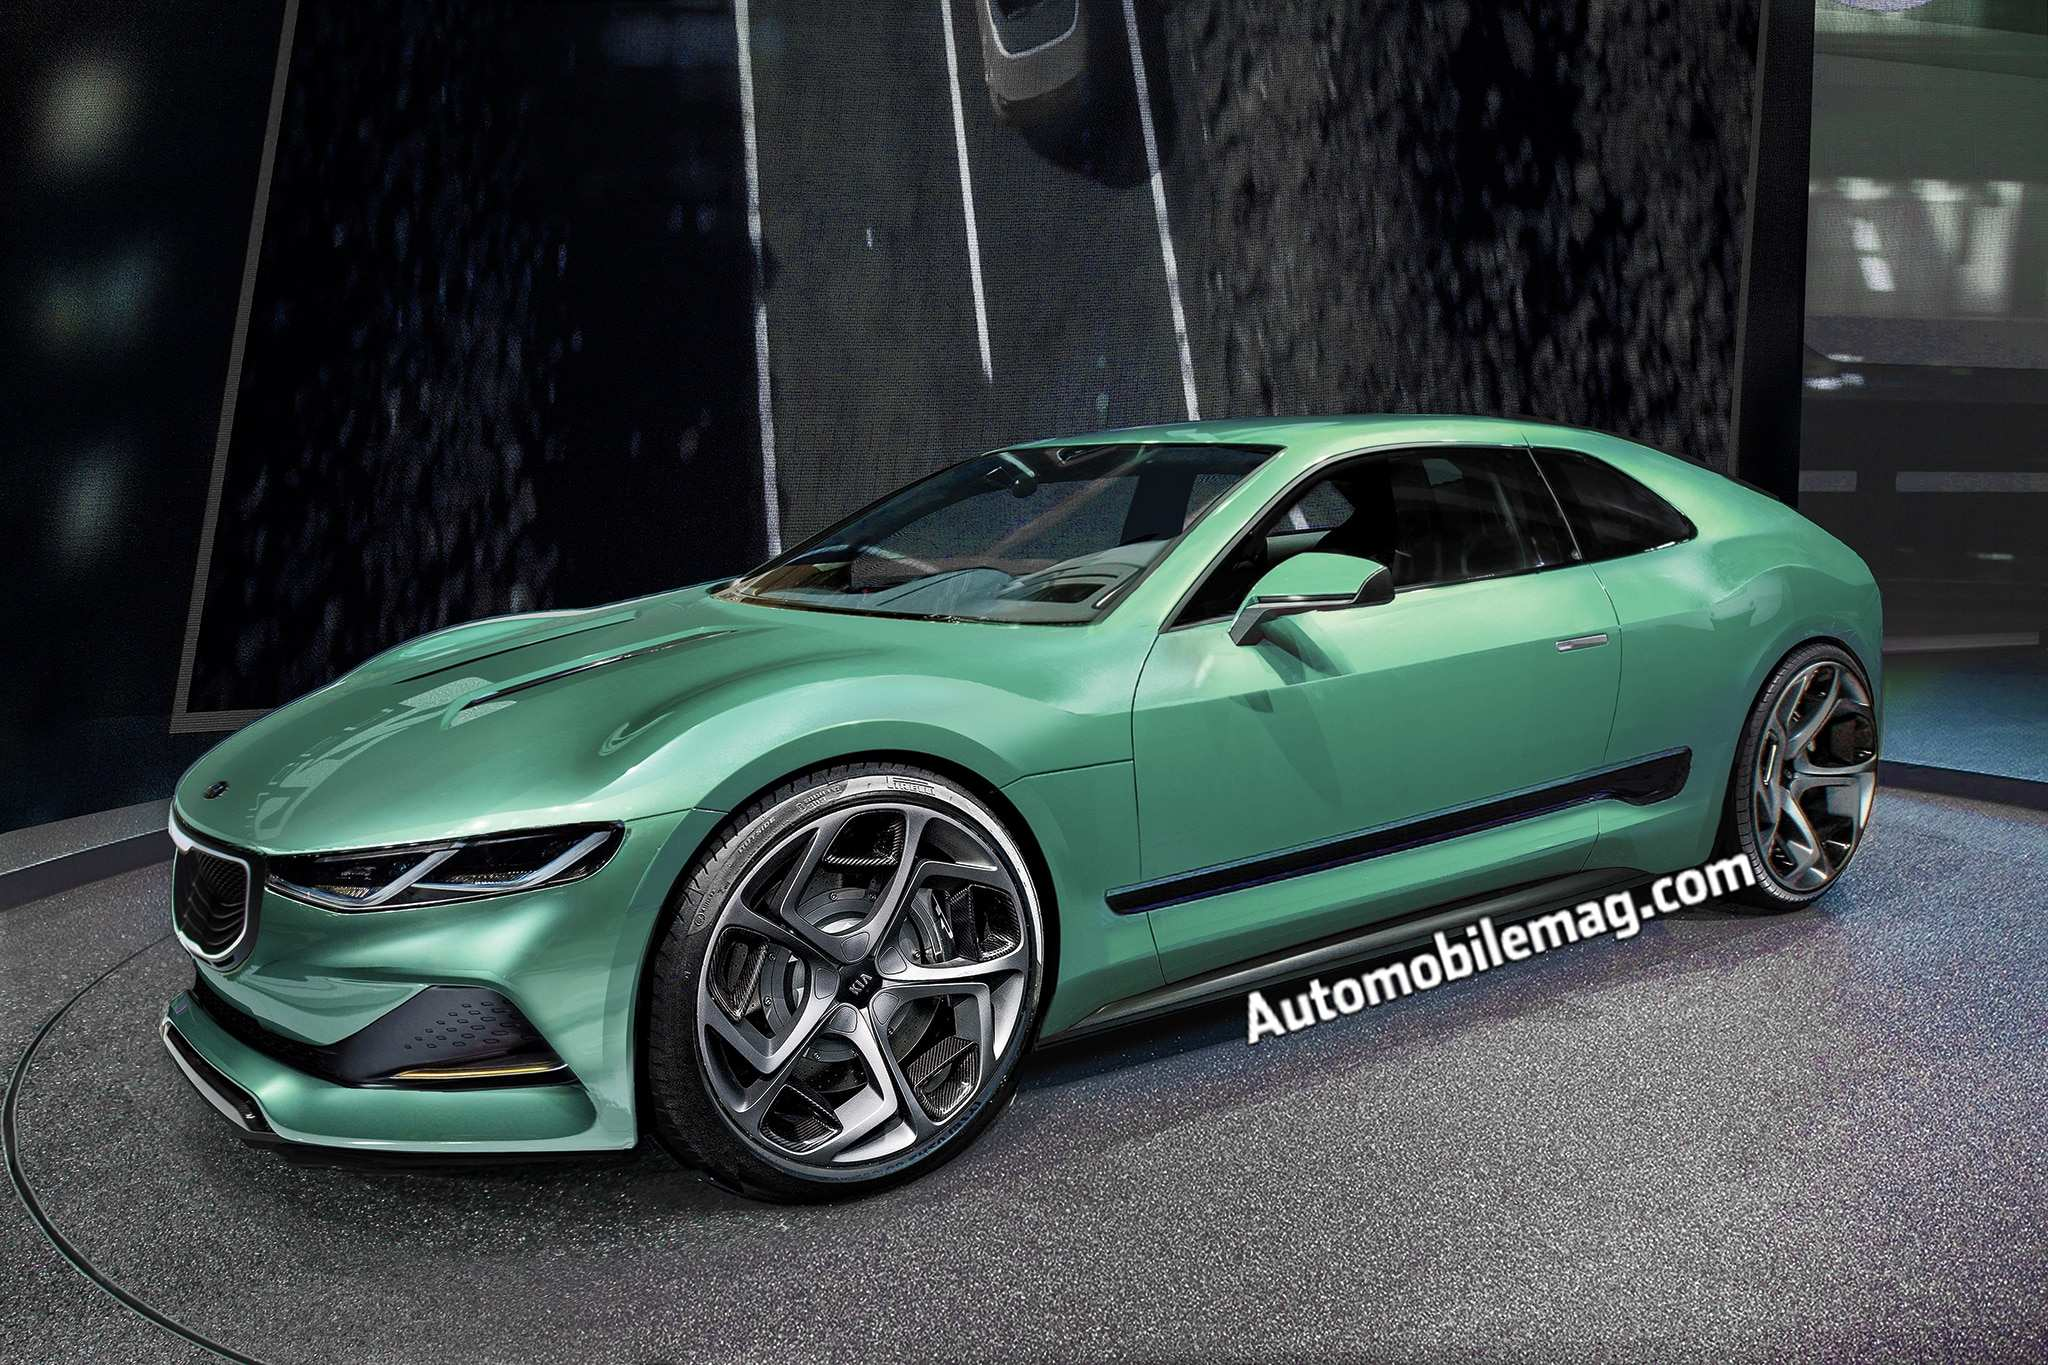 45 Concept of Ford Concept Cars 2020 Price for Ford Concept Cars 2020